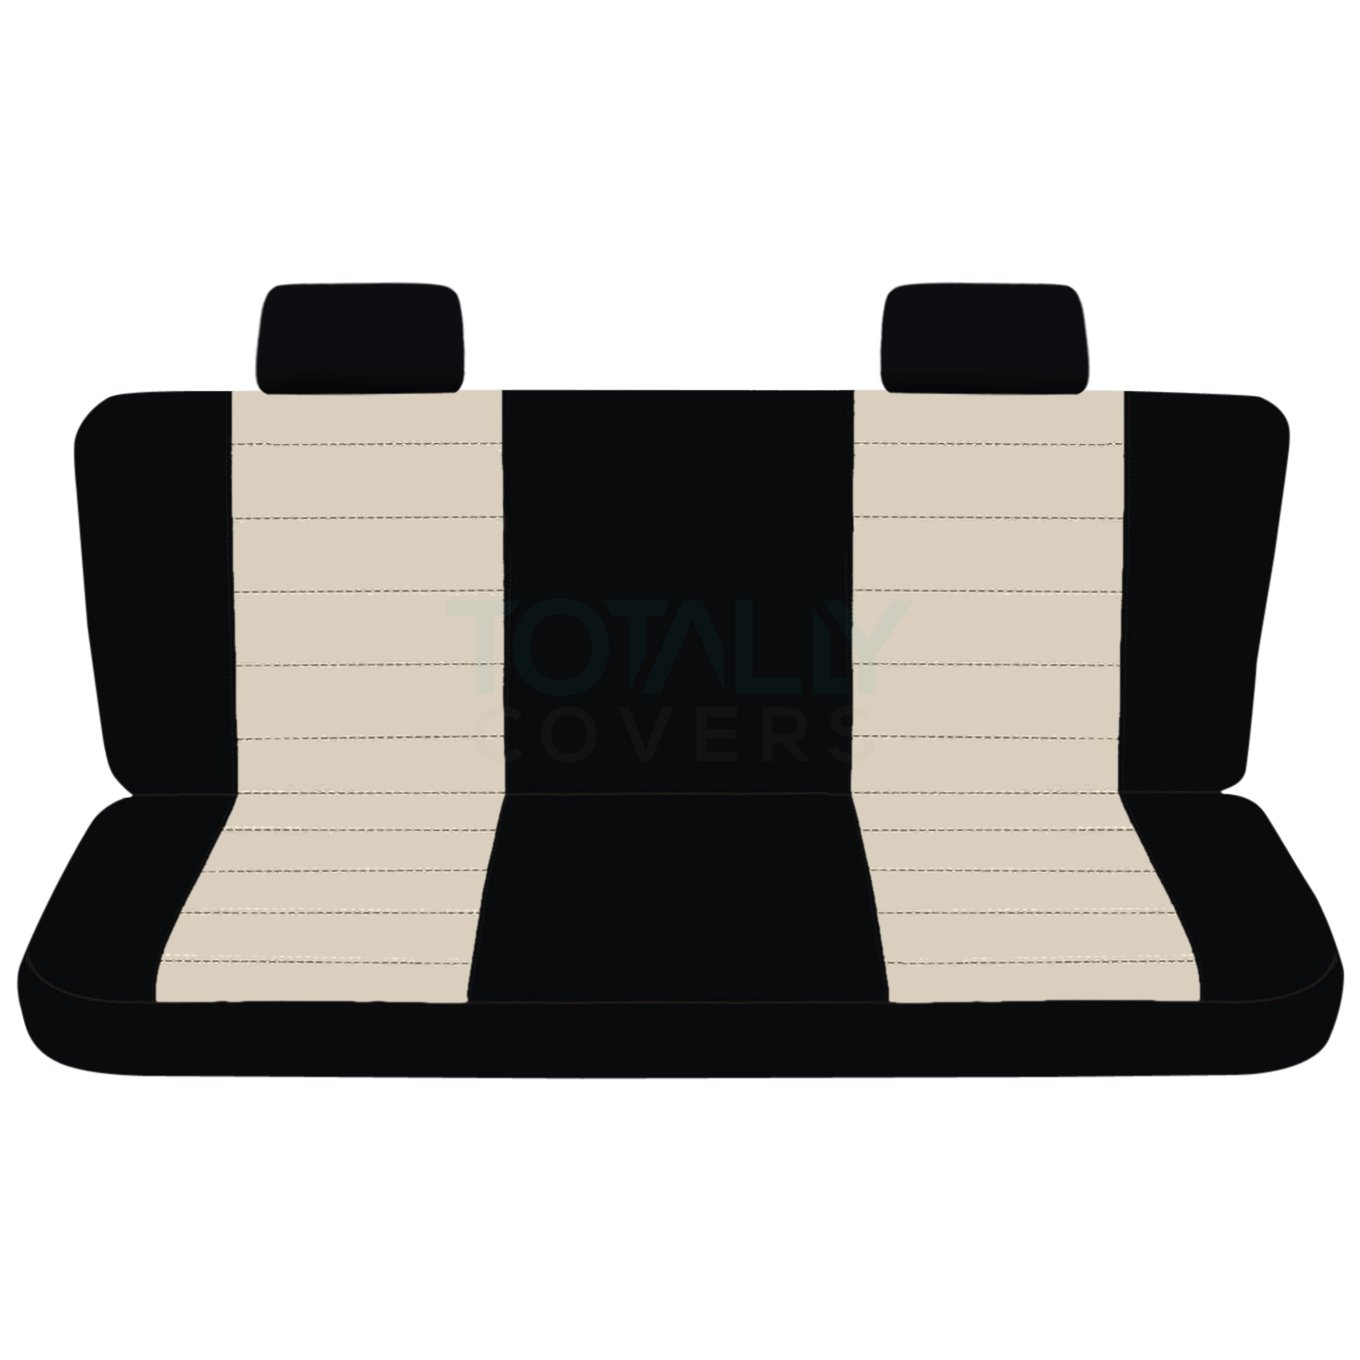 21 Colors Totally Covers Fits 2004-2009 Ford F-150 Two-Tone Truck Seat Covers 2005 2006 2007 2008 F-Series F150 Back w//wo Center Armrest: Black /& Charcoal Rear 60//40 Split Bench